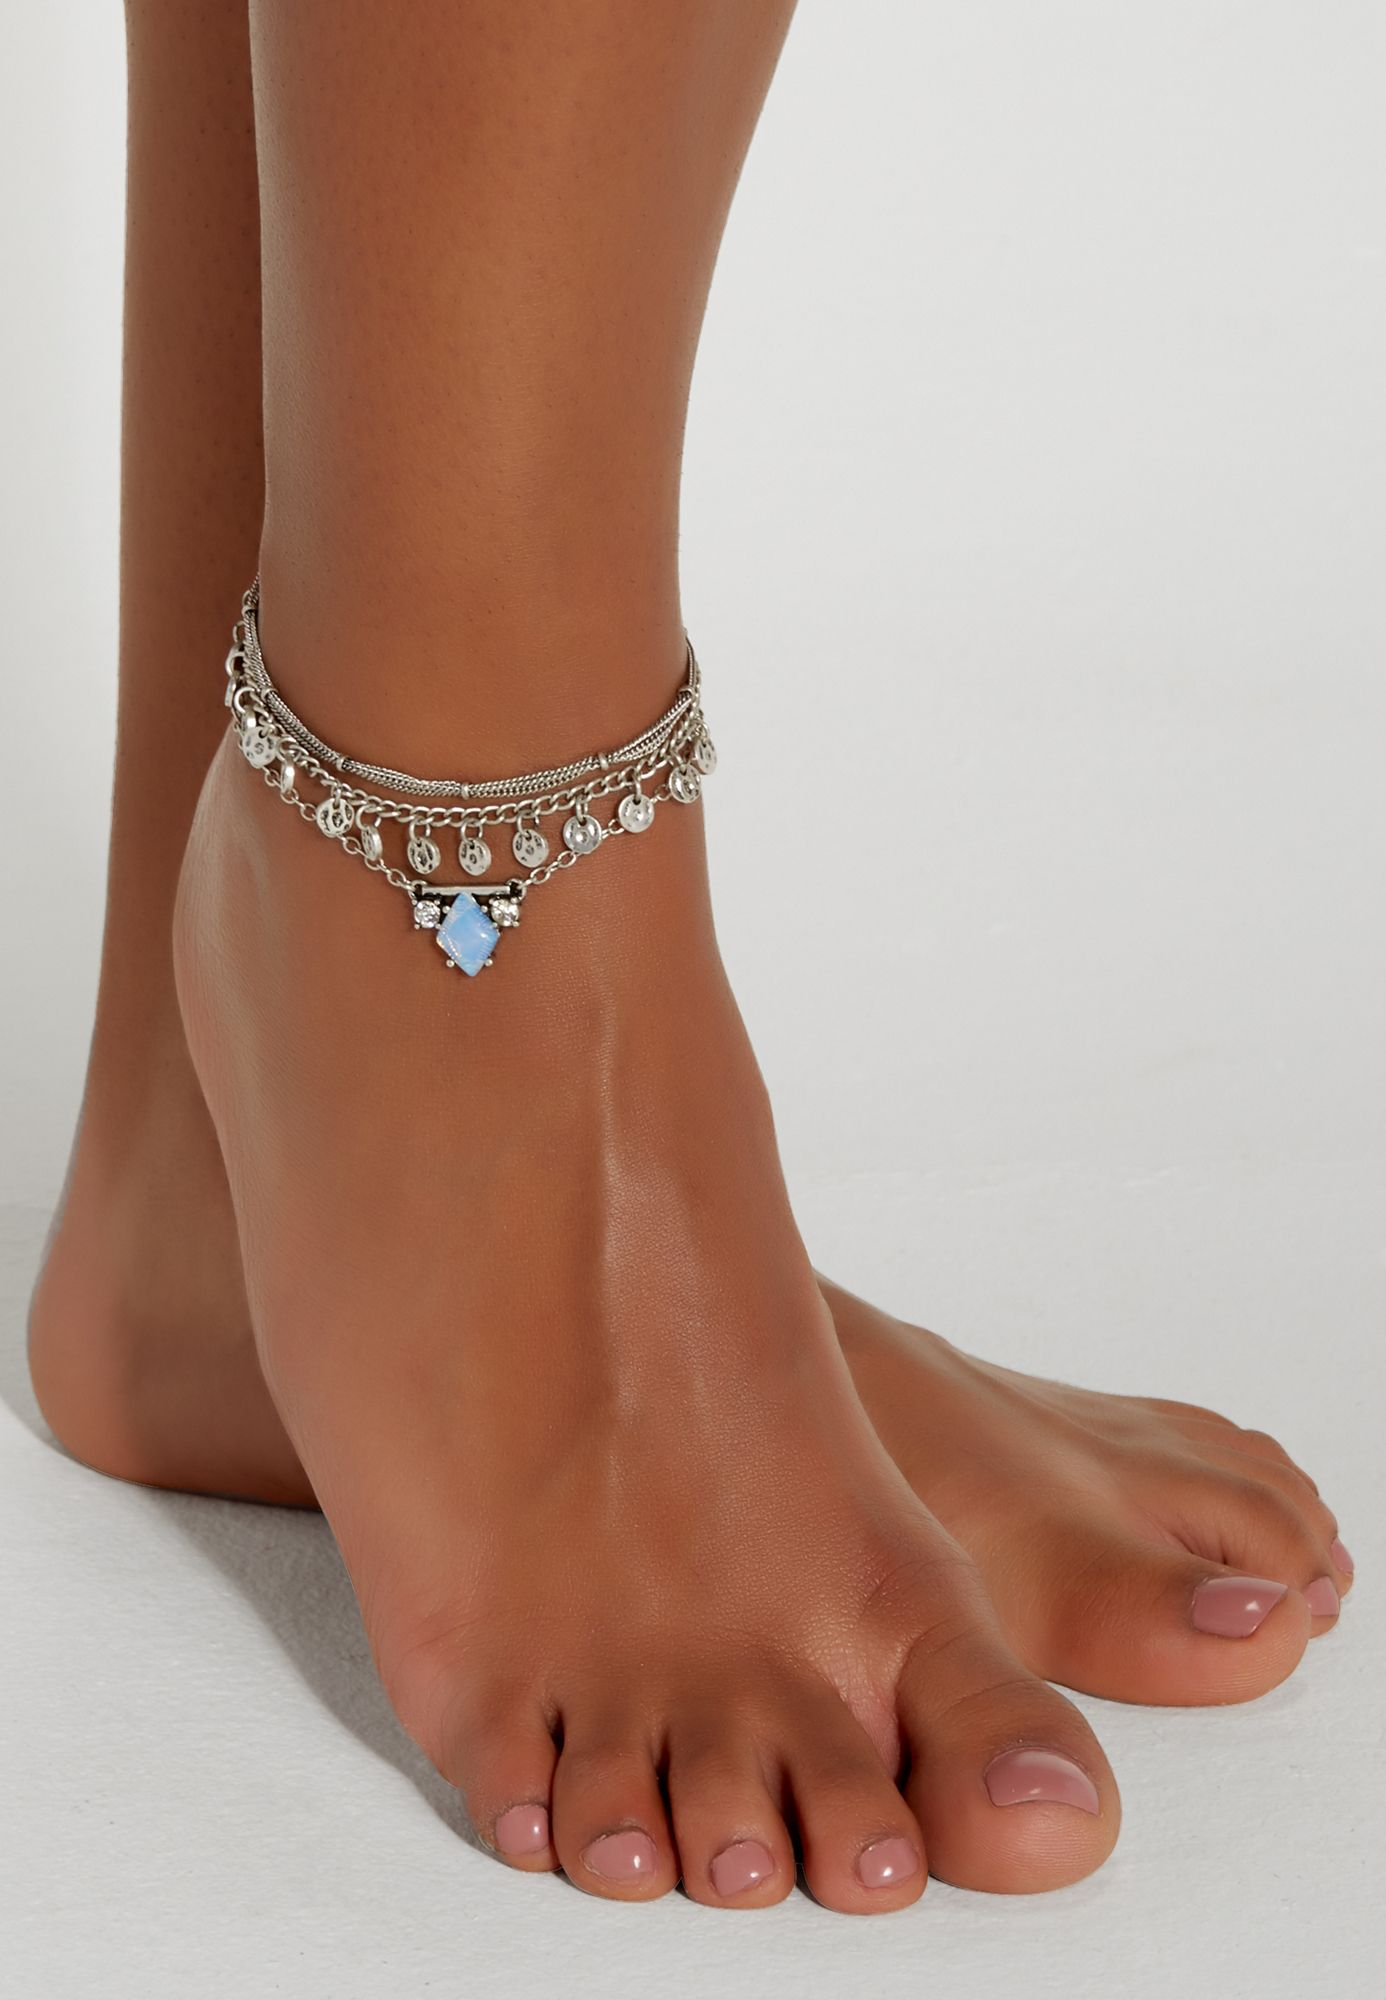 anklets ladies bracelets girls anklet cuff tan oblacoder leather new ring designs wearing women sandals toe rings and for mens ankle gladiator fancy